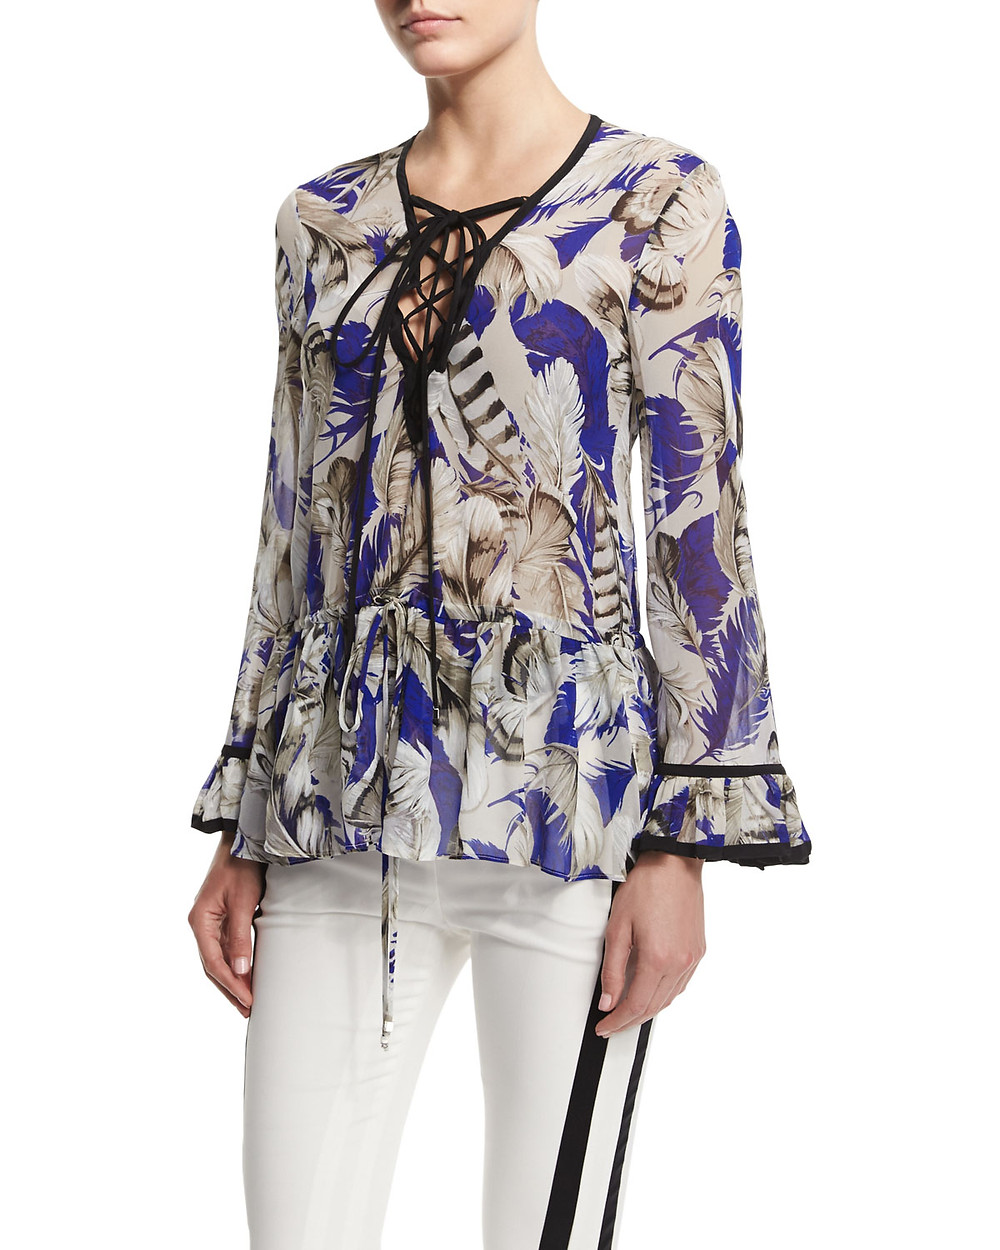 Roberto Cavalli lace-up top $1,530